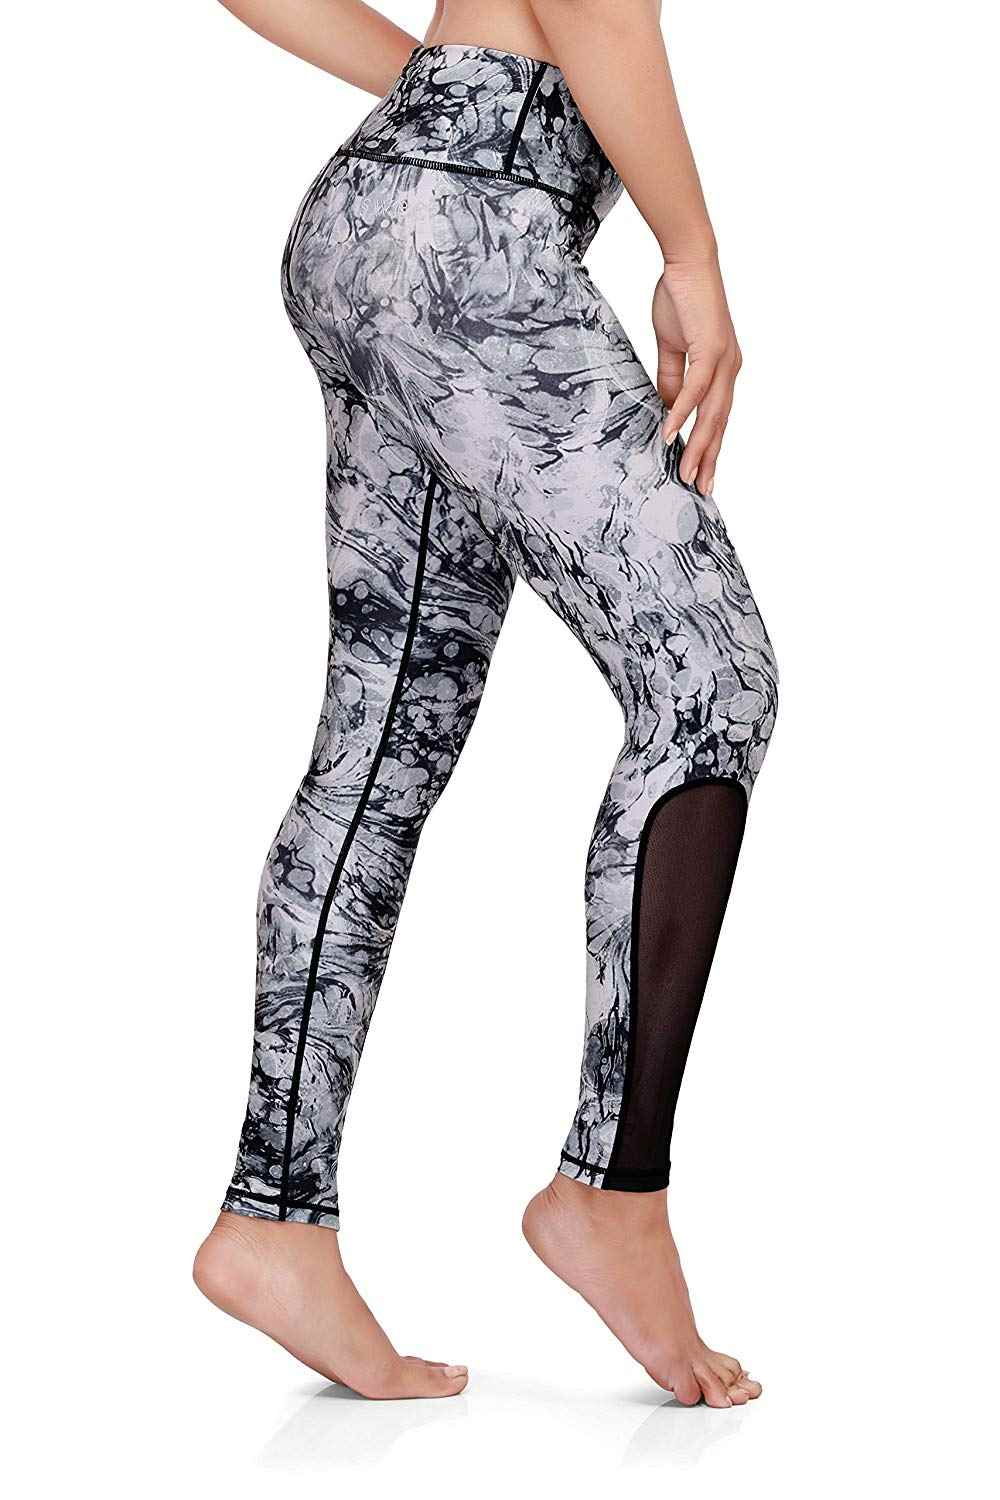 Omtex-Athletica-Activewear-Bottoms-for-Women-Light-Grey-Black2